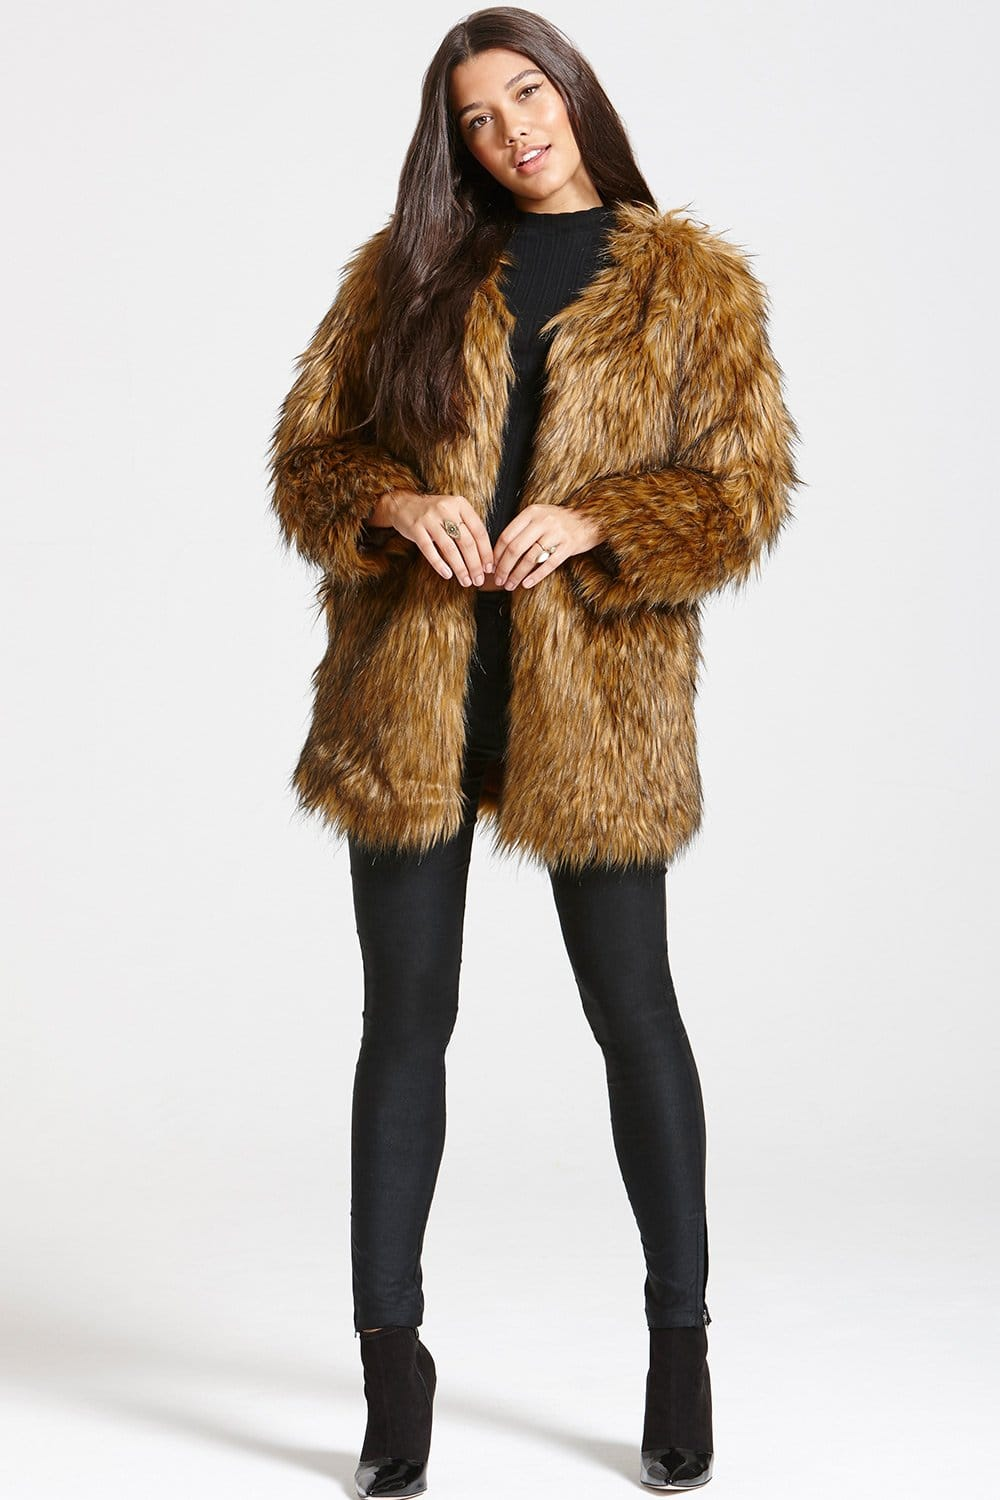 Faux Fur Coat Uk Online - Tradingbasis